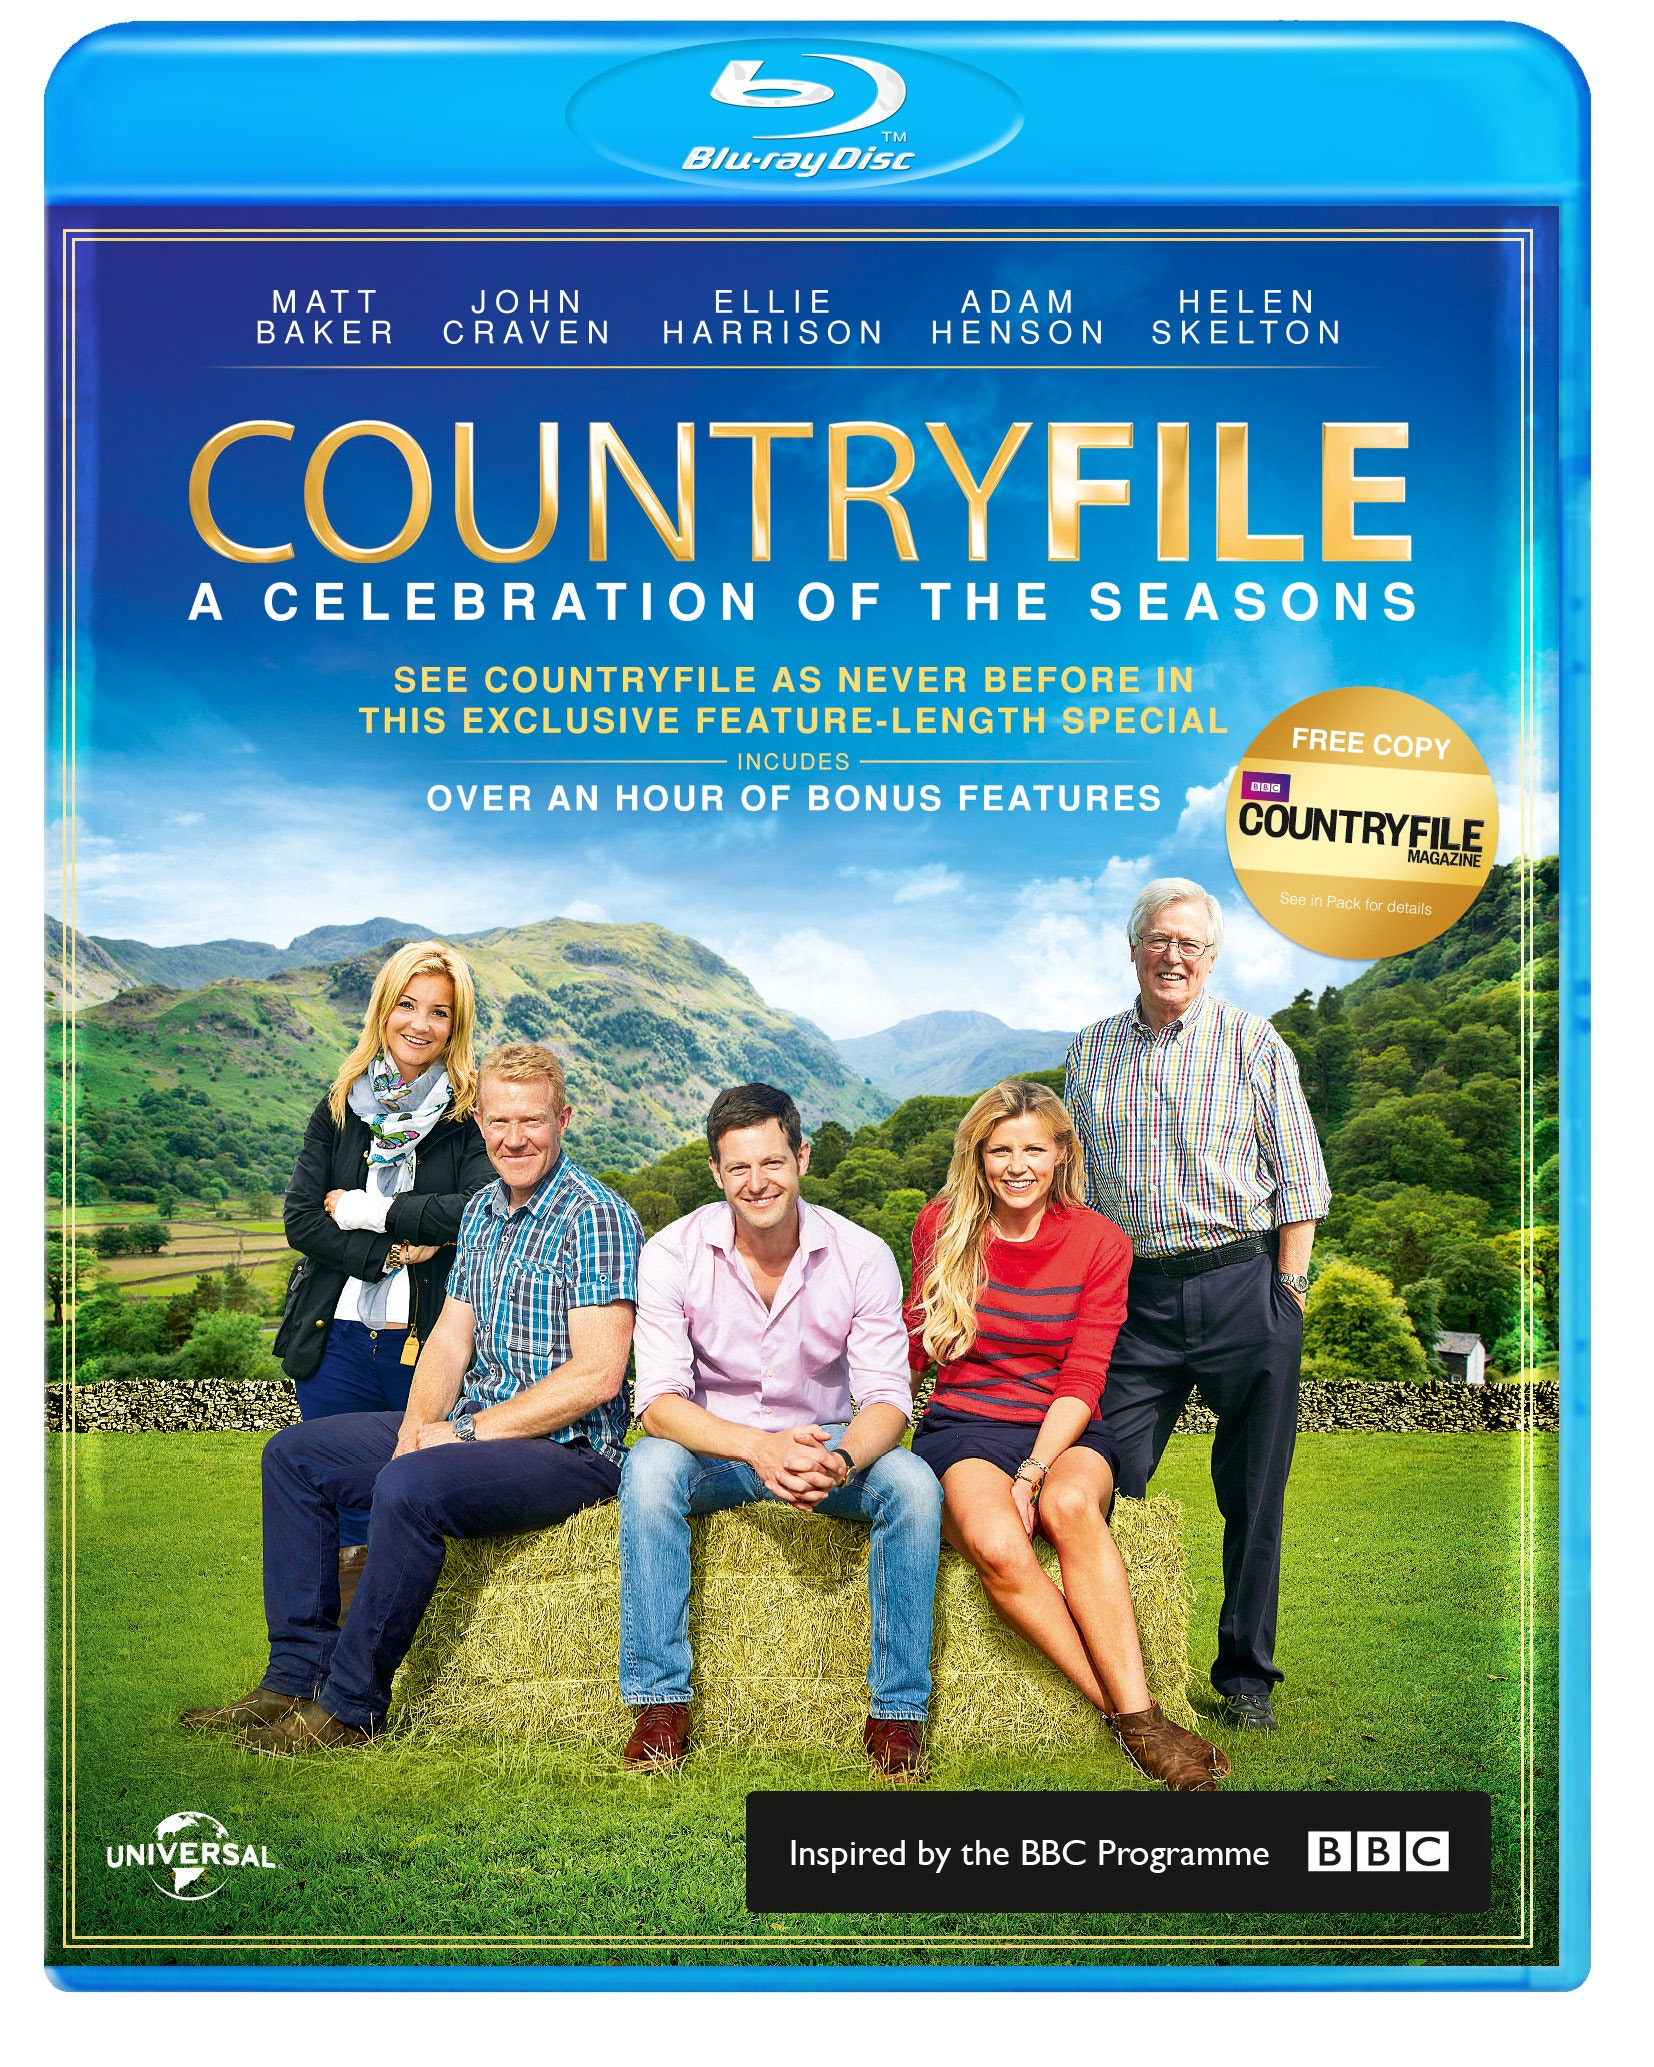 Countryfile: A Celebration Of The Seasons sweepstakes